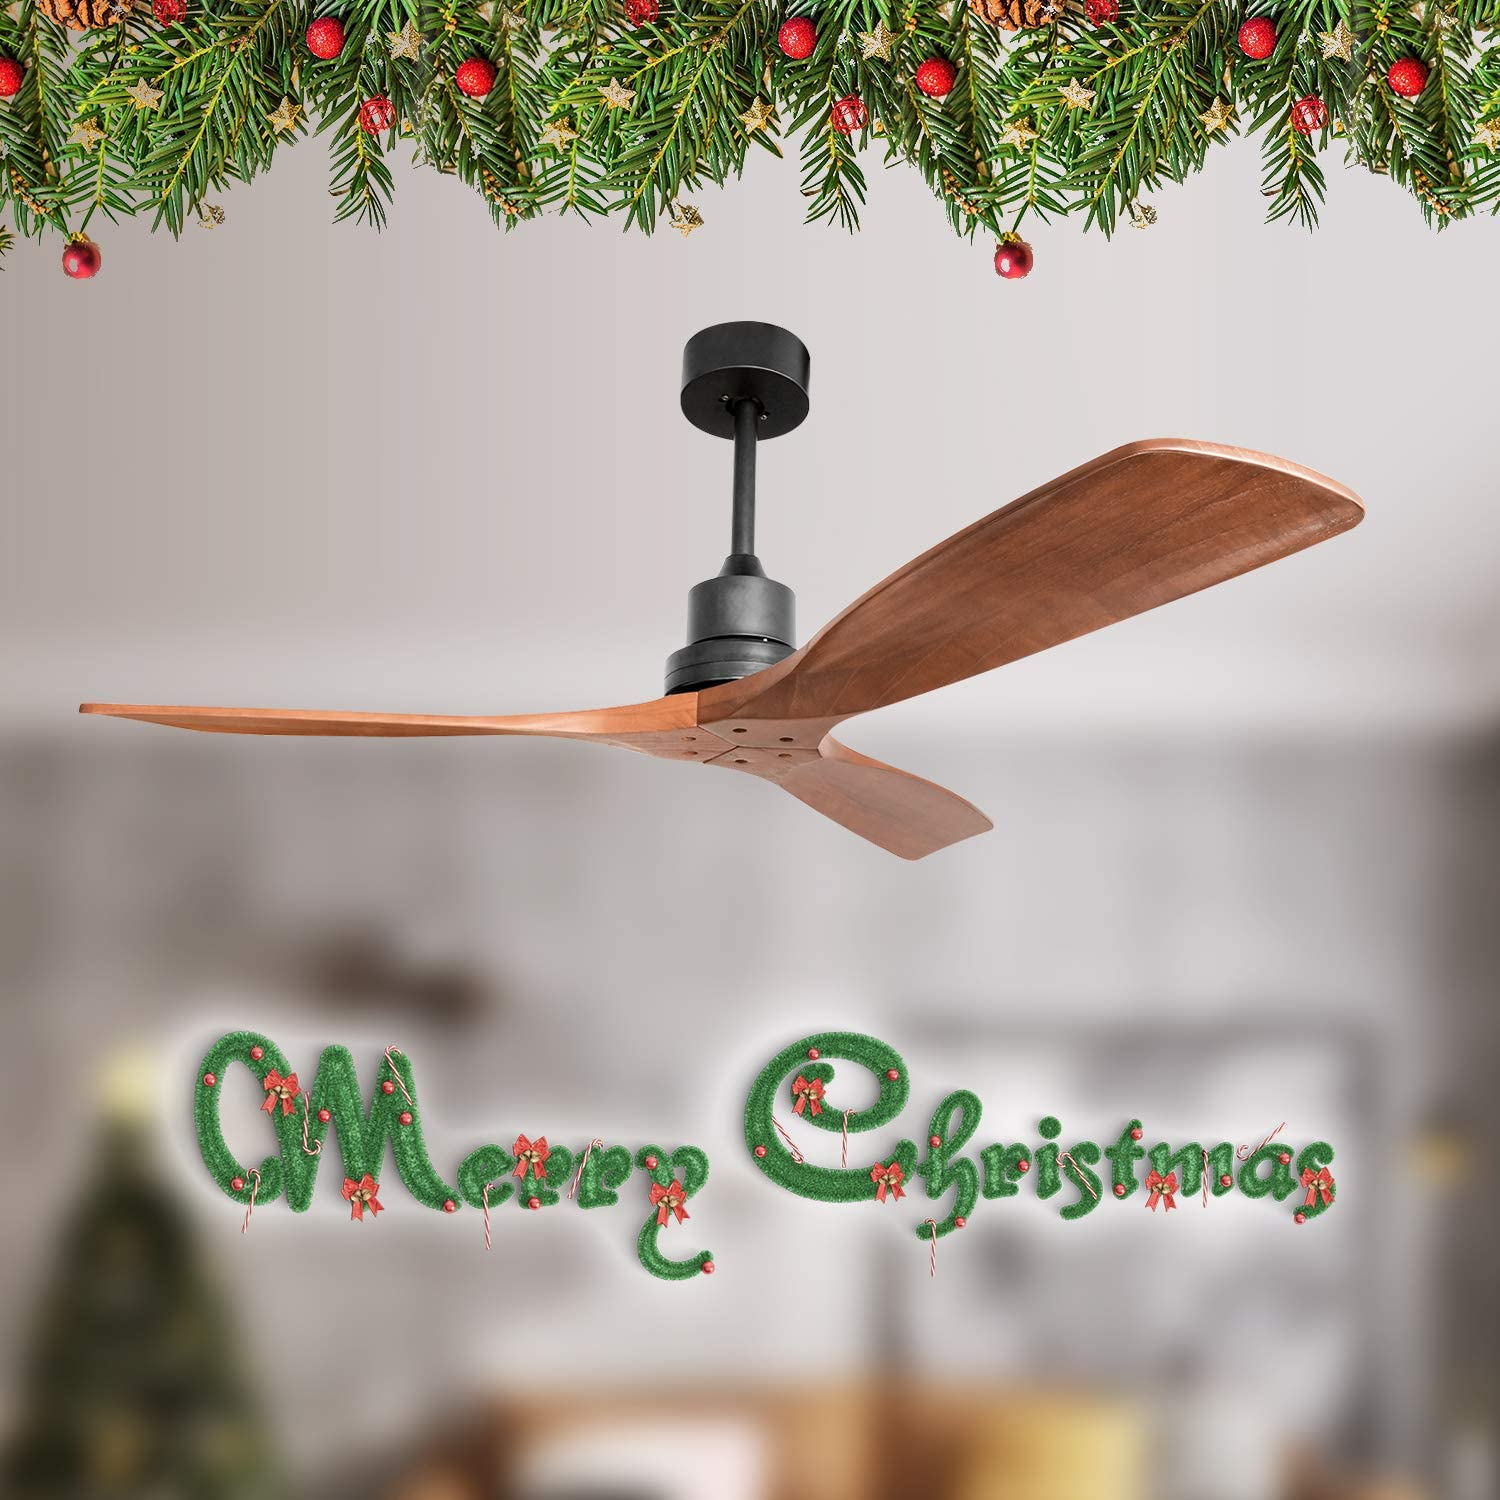 Sofucor Wood Ceiling Fan With Lights 3 Carved Wood Fan Blade Ceiling Fans Noiseless Motor Solid Walnut And Matte Black Tools Home Improvement Ceiling Fans Accessories Mhiberlin De